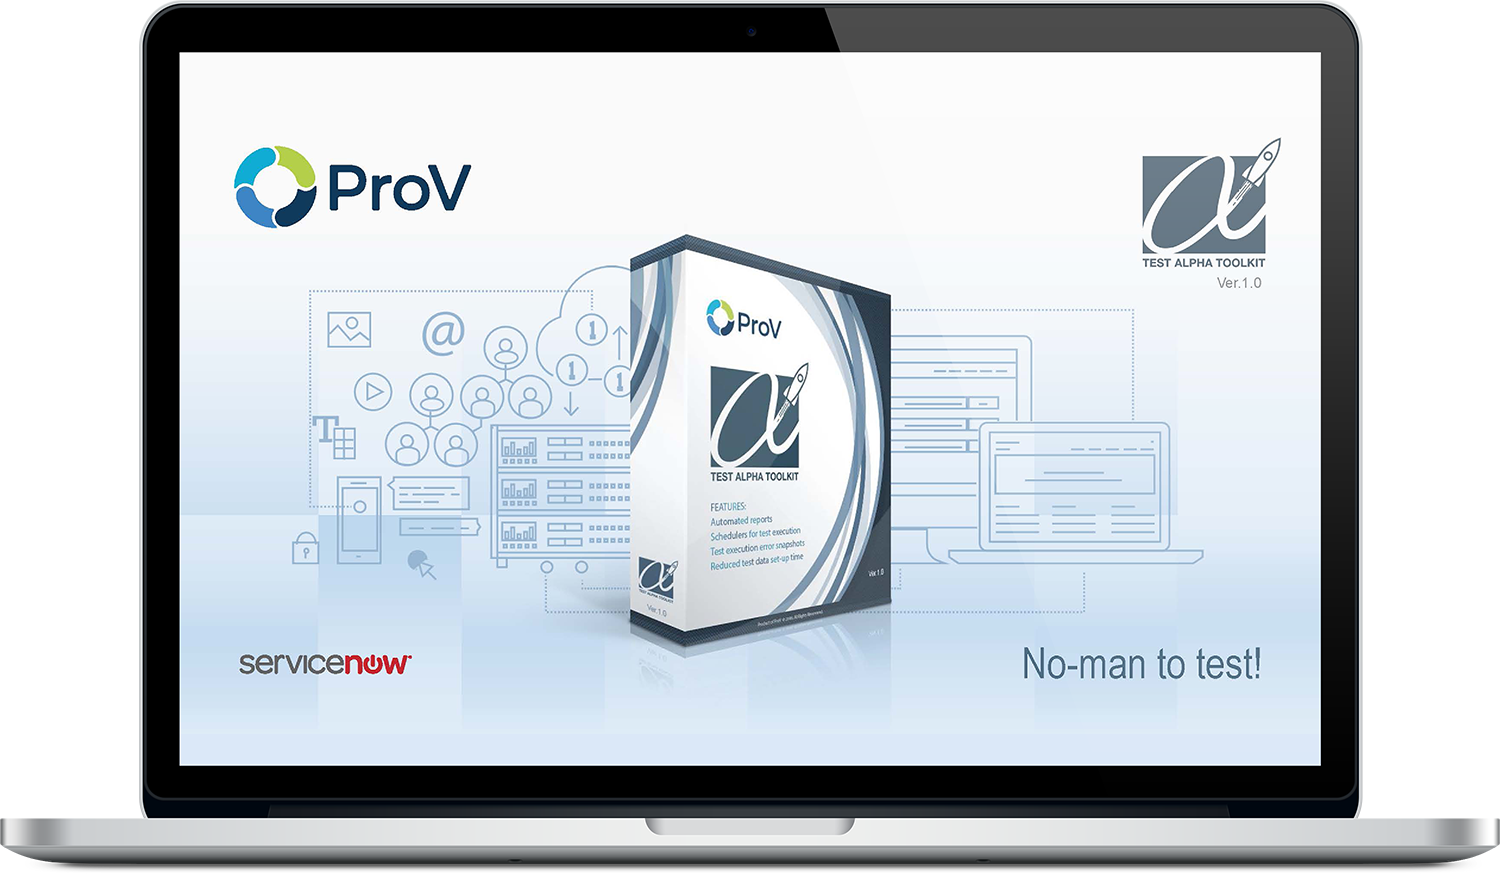 ProV Managed IT Services